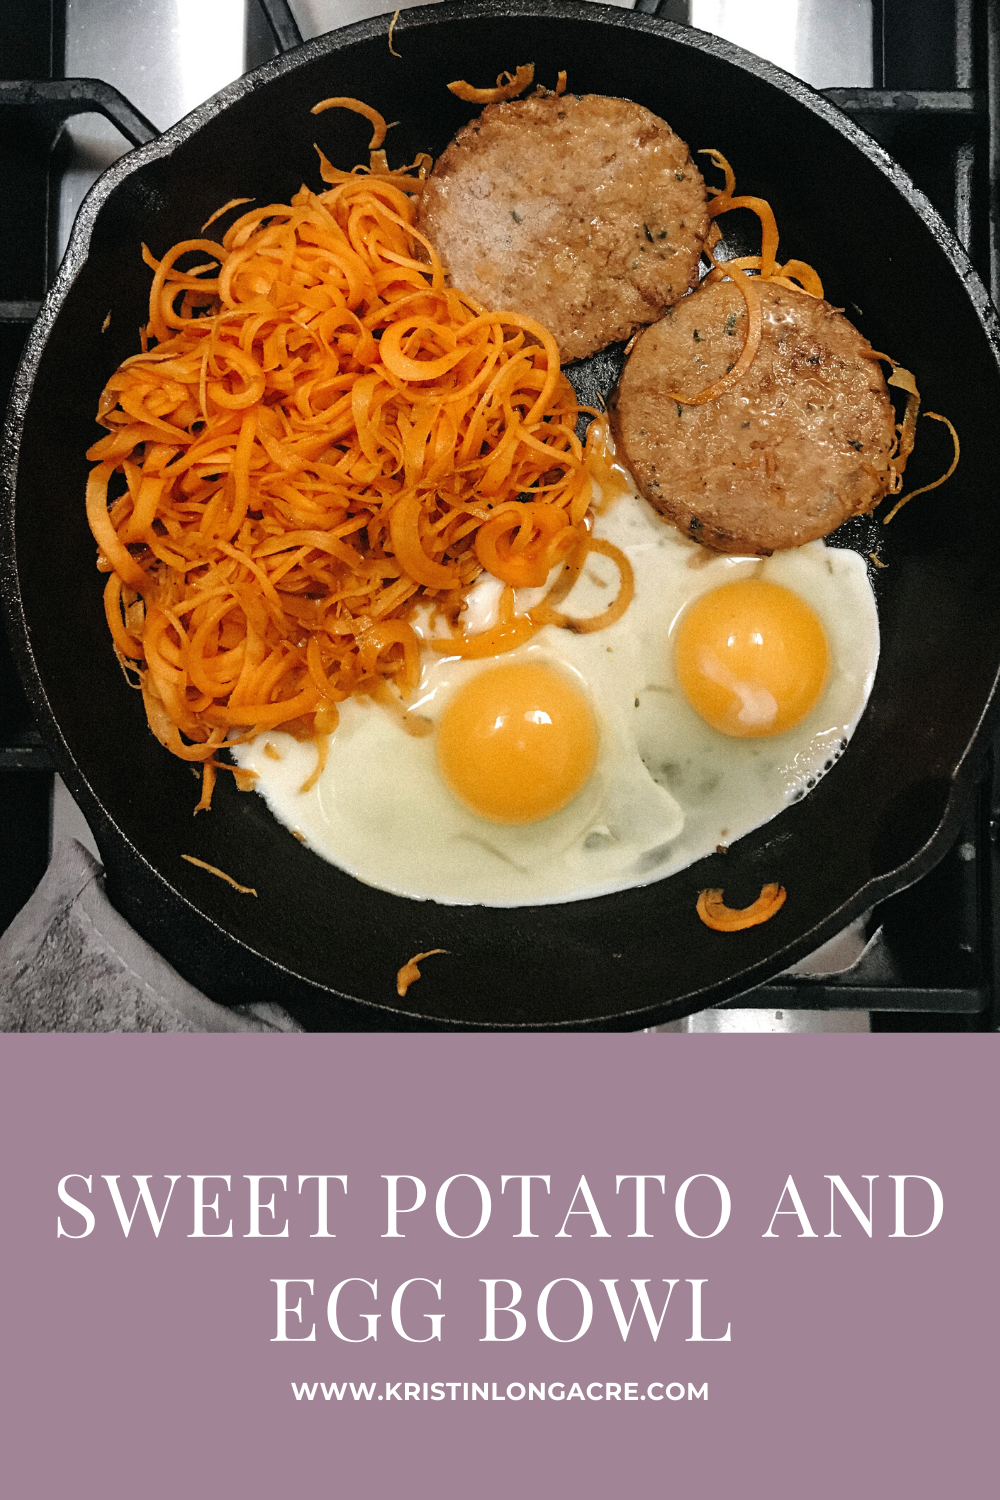 Sweet Potato and Egg Bowl